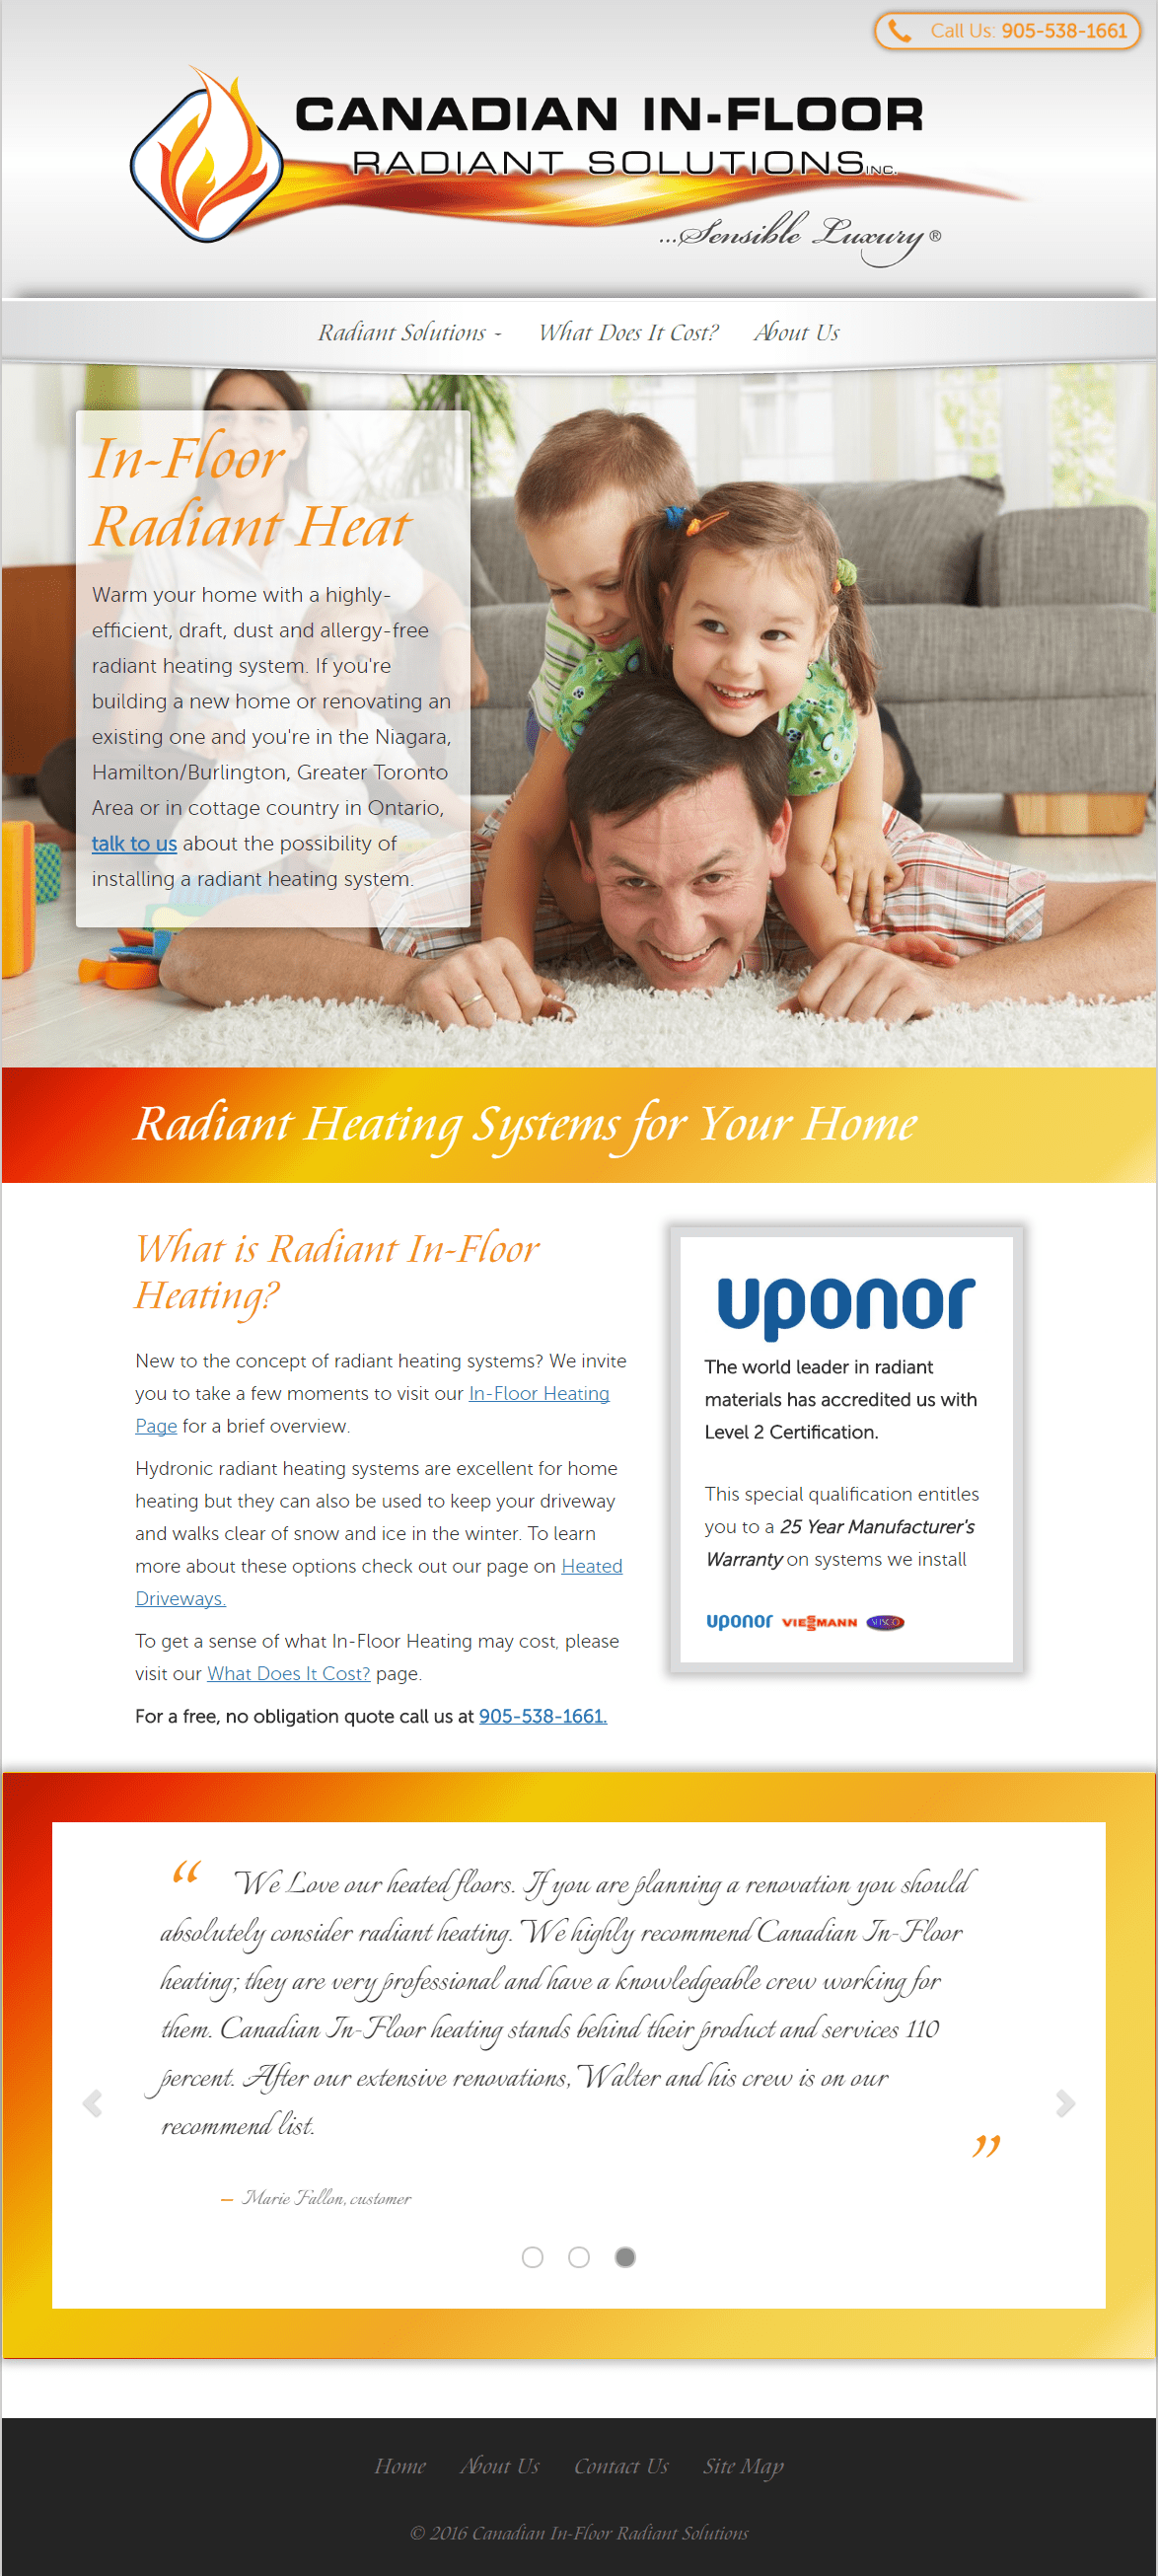 Full-page image of Canadian In-floor Radiant Solutions website